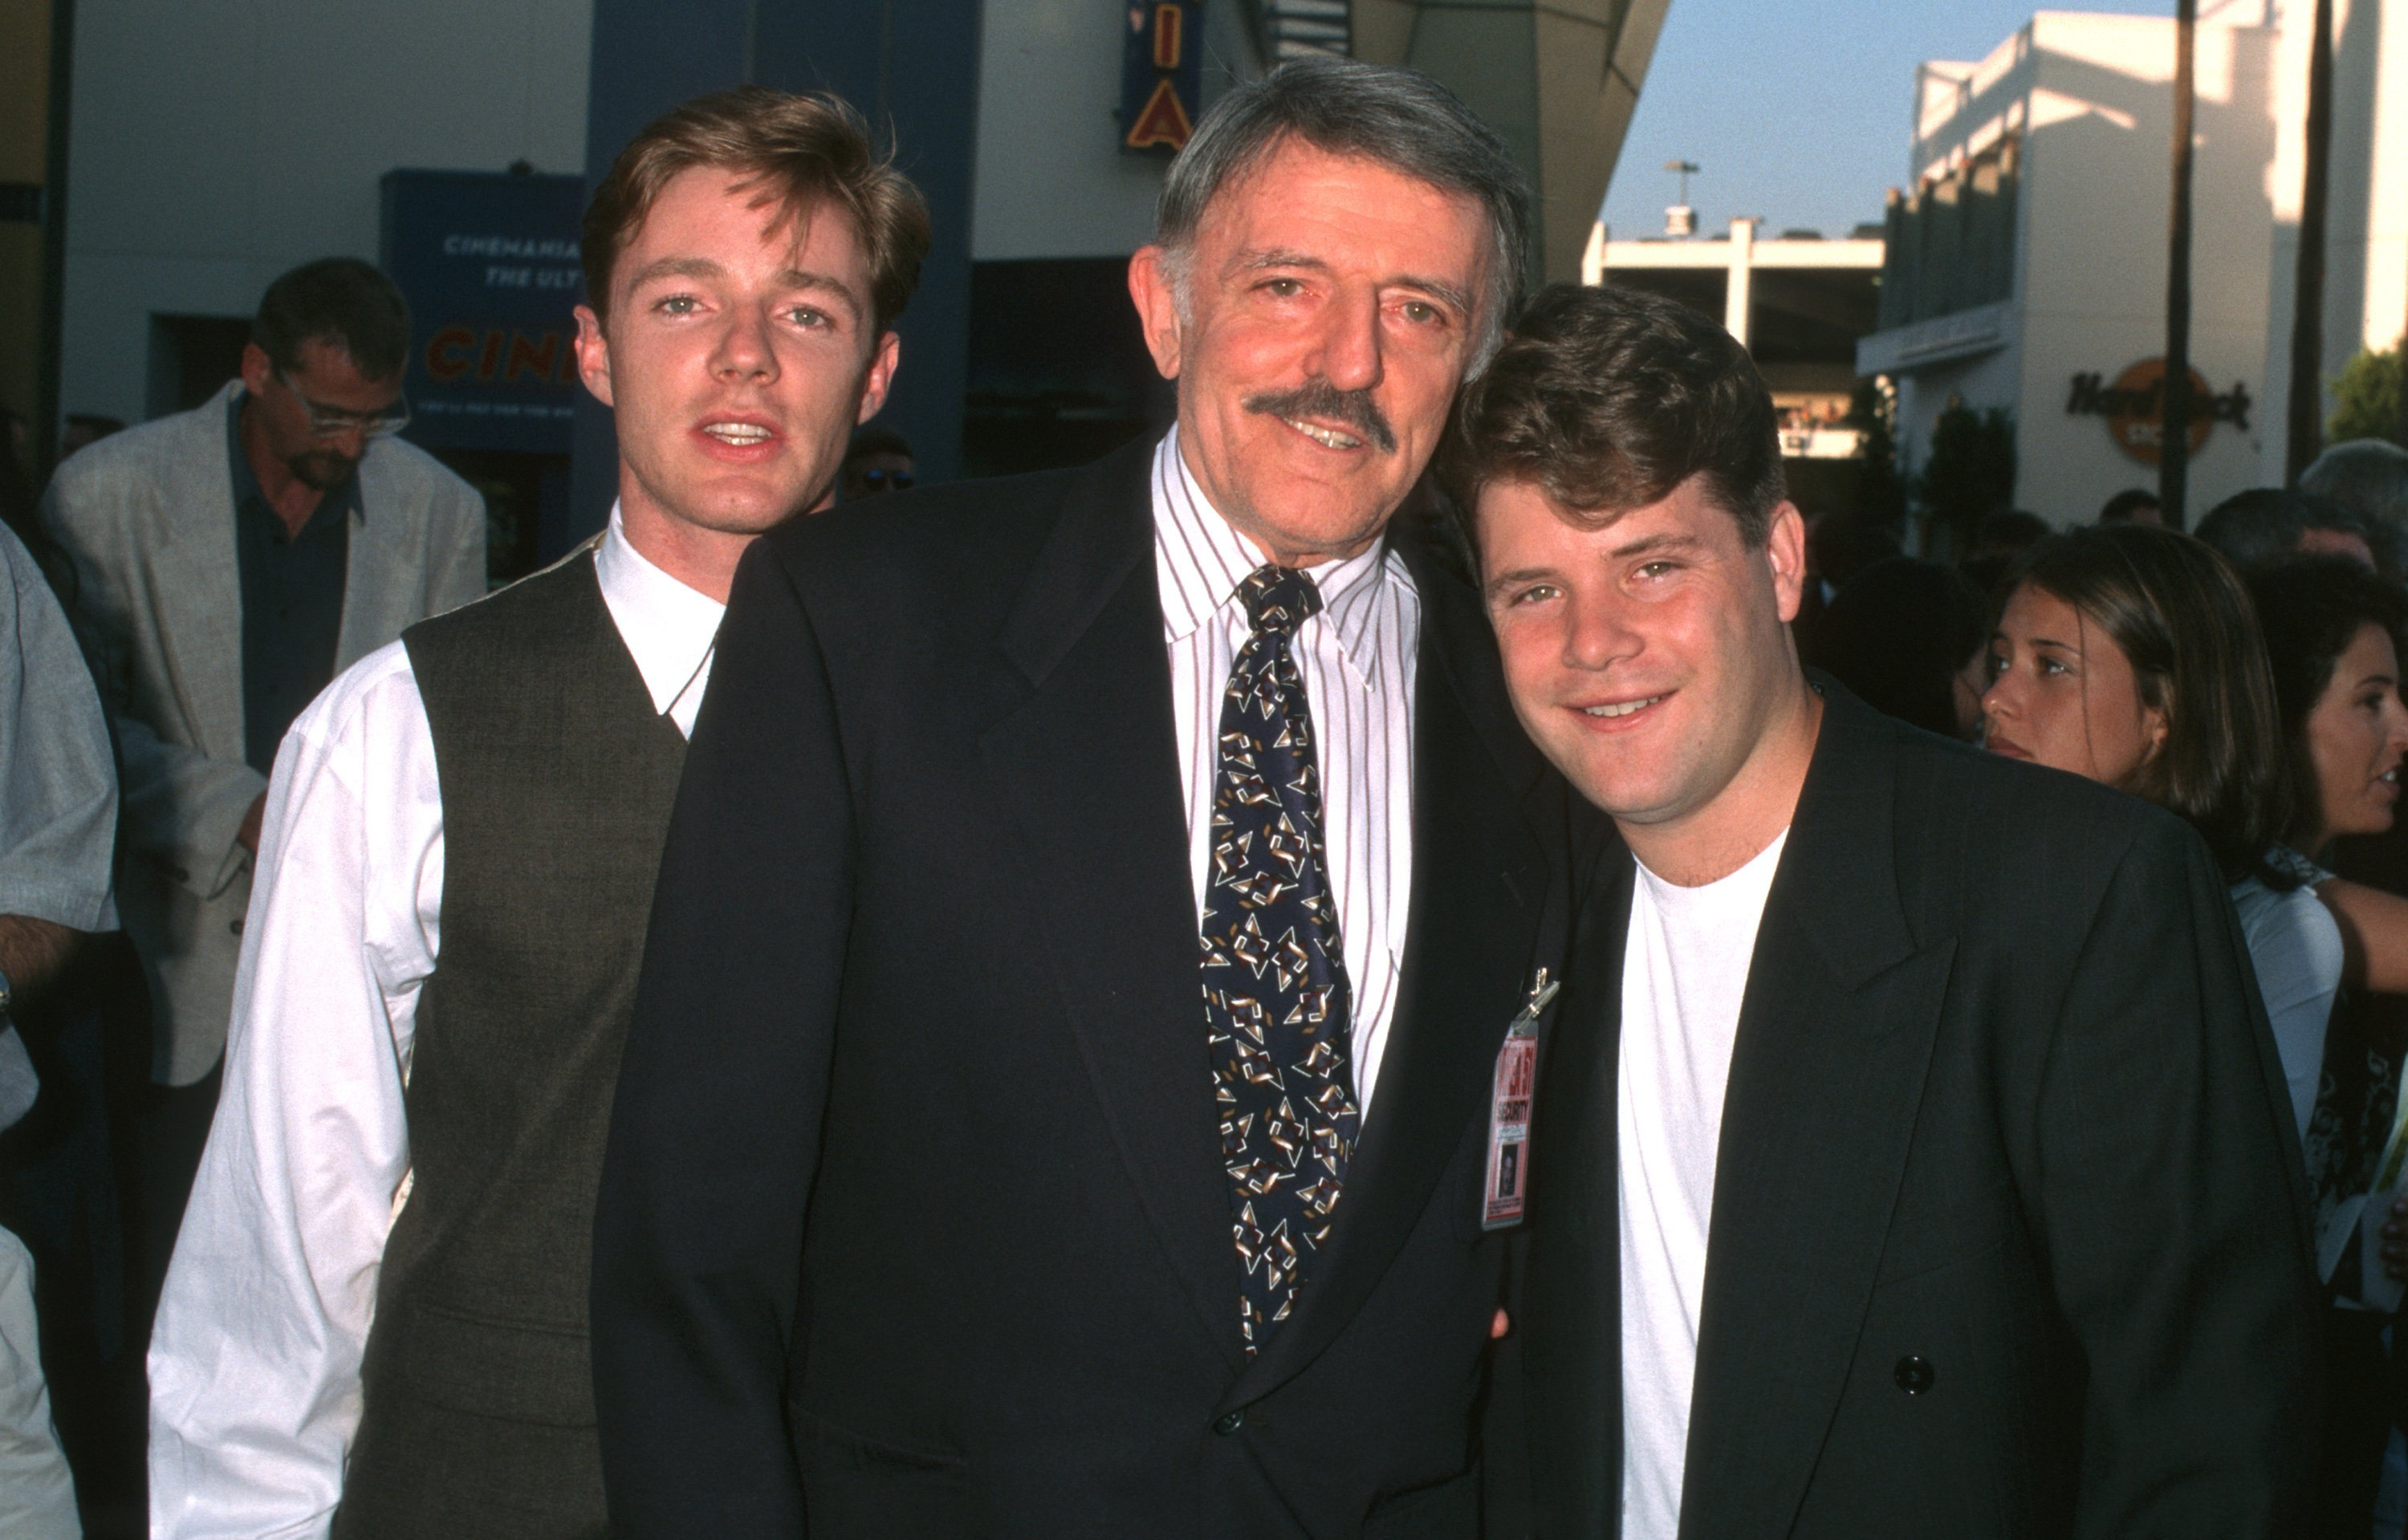 Mackenzie Astin, John Astin, and Sean Astin in Universal City, California on July 17, 1996 | Source: Getty Images